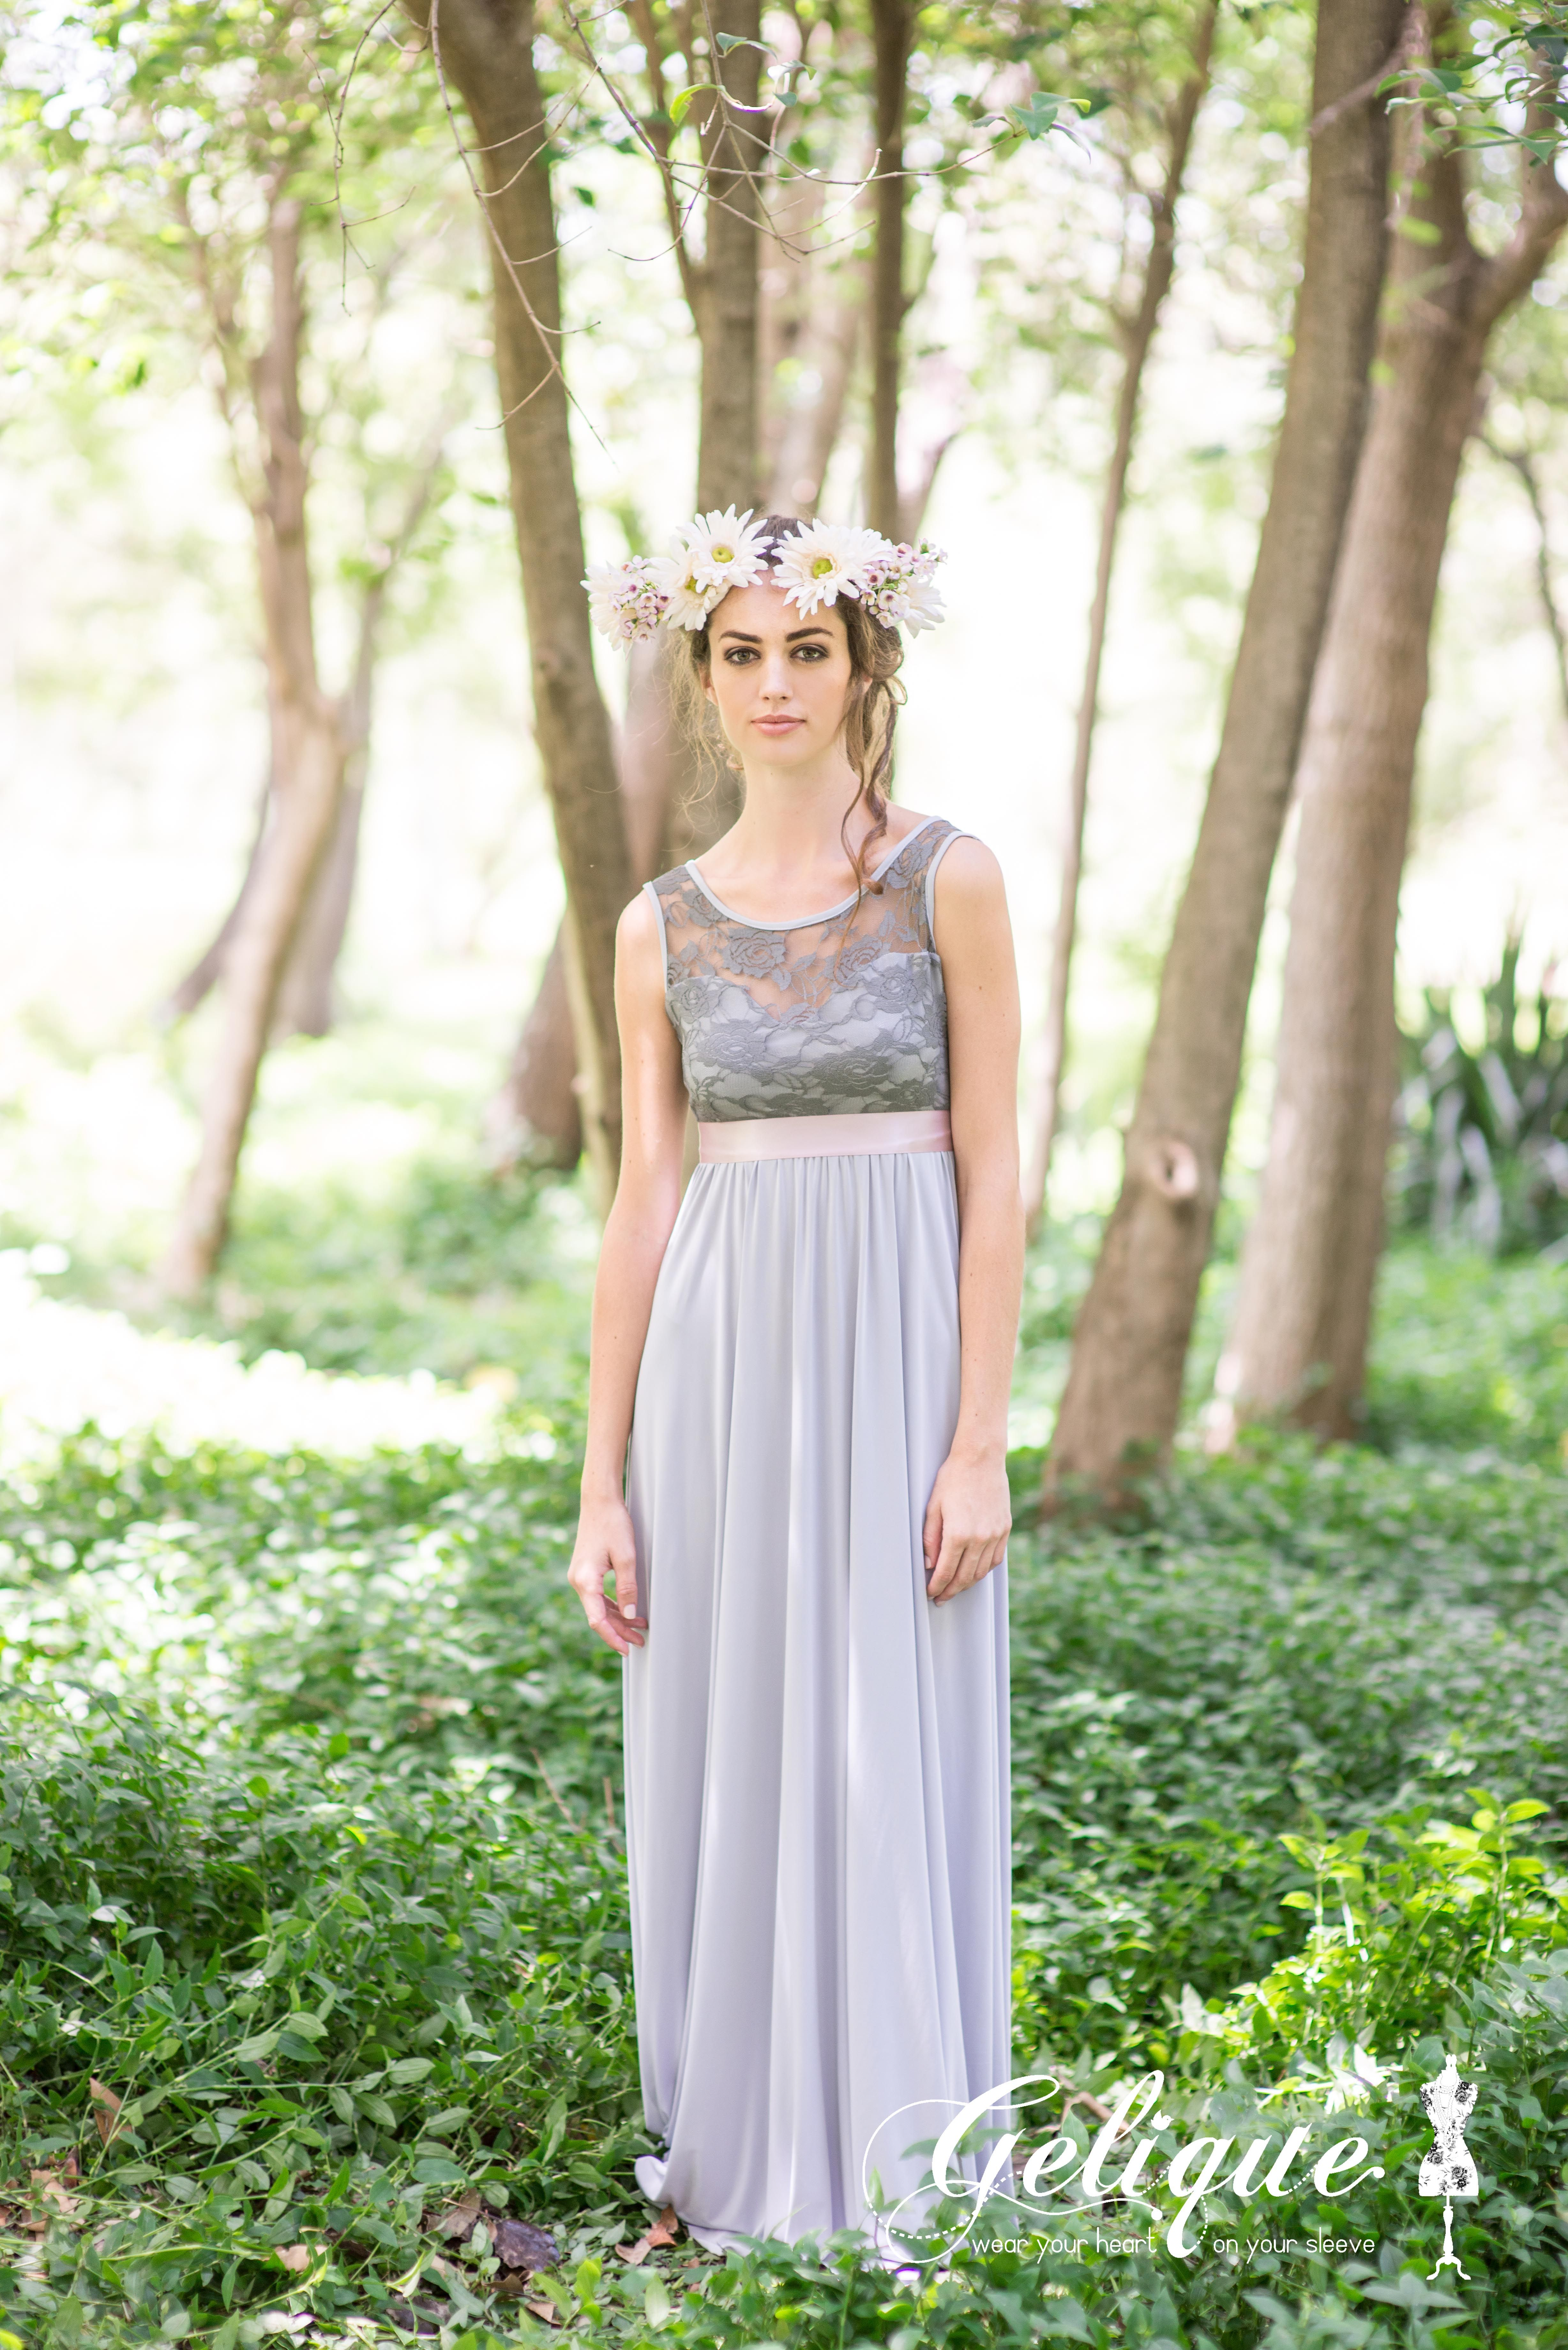 Leah gelique bridesmaids dress soft grey dress soft and sweet the gelique daisy dress offers an elegant dress that can be adapted to suit your desired purple bridesmaid ombrellifo Choice Image